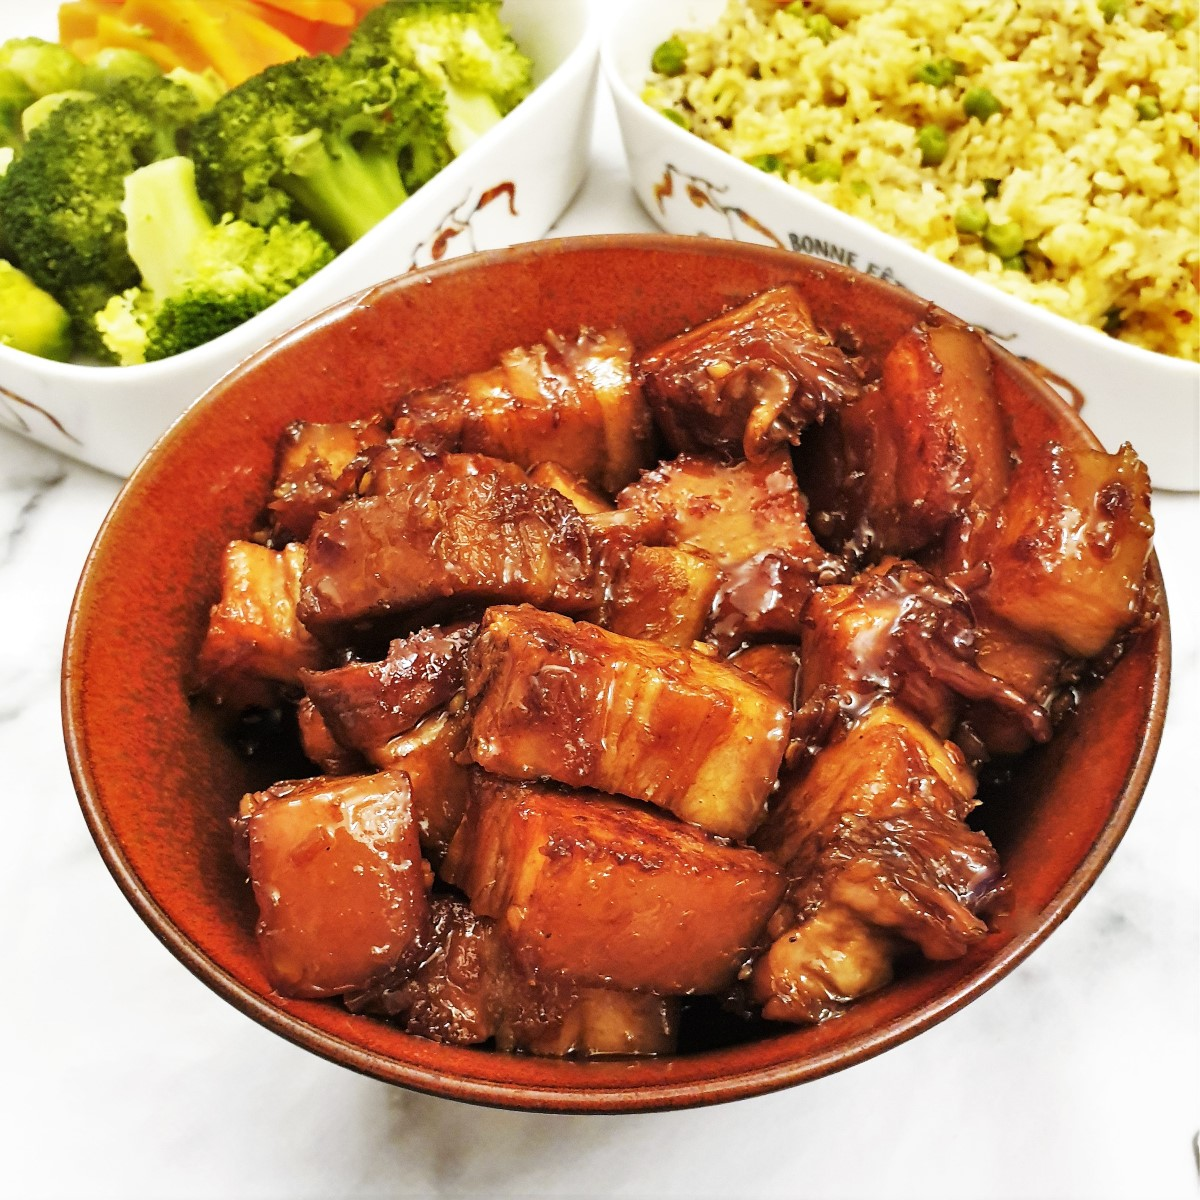 Close up of a dish of sticky pork belly bites with rice and vegetables in the background.